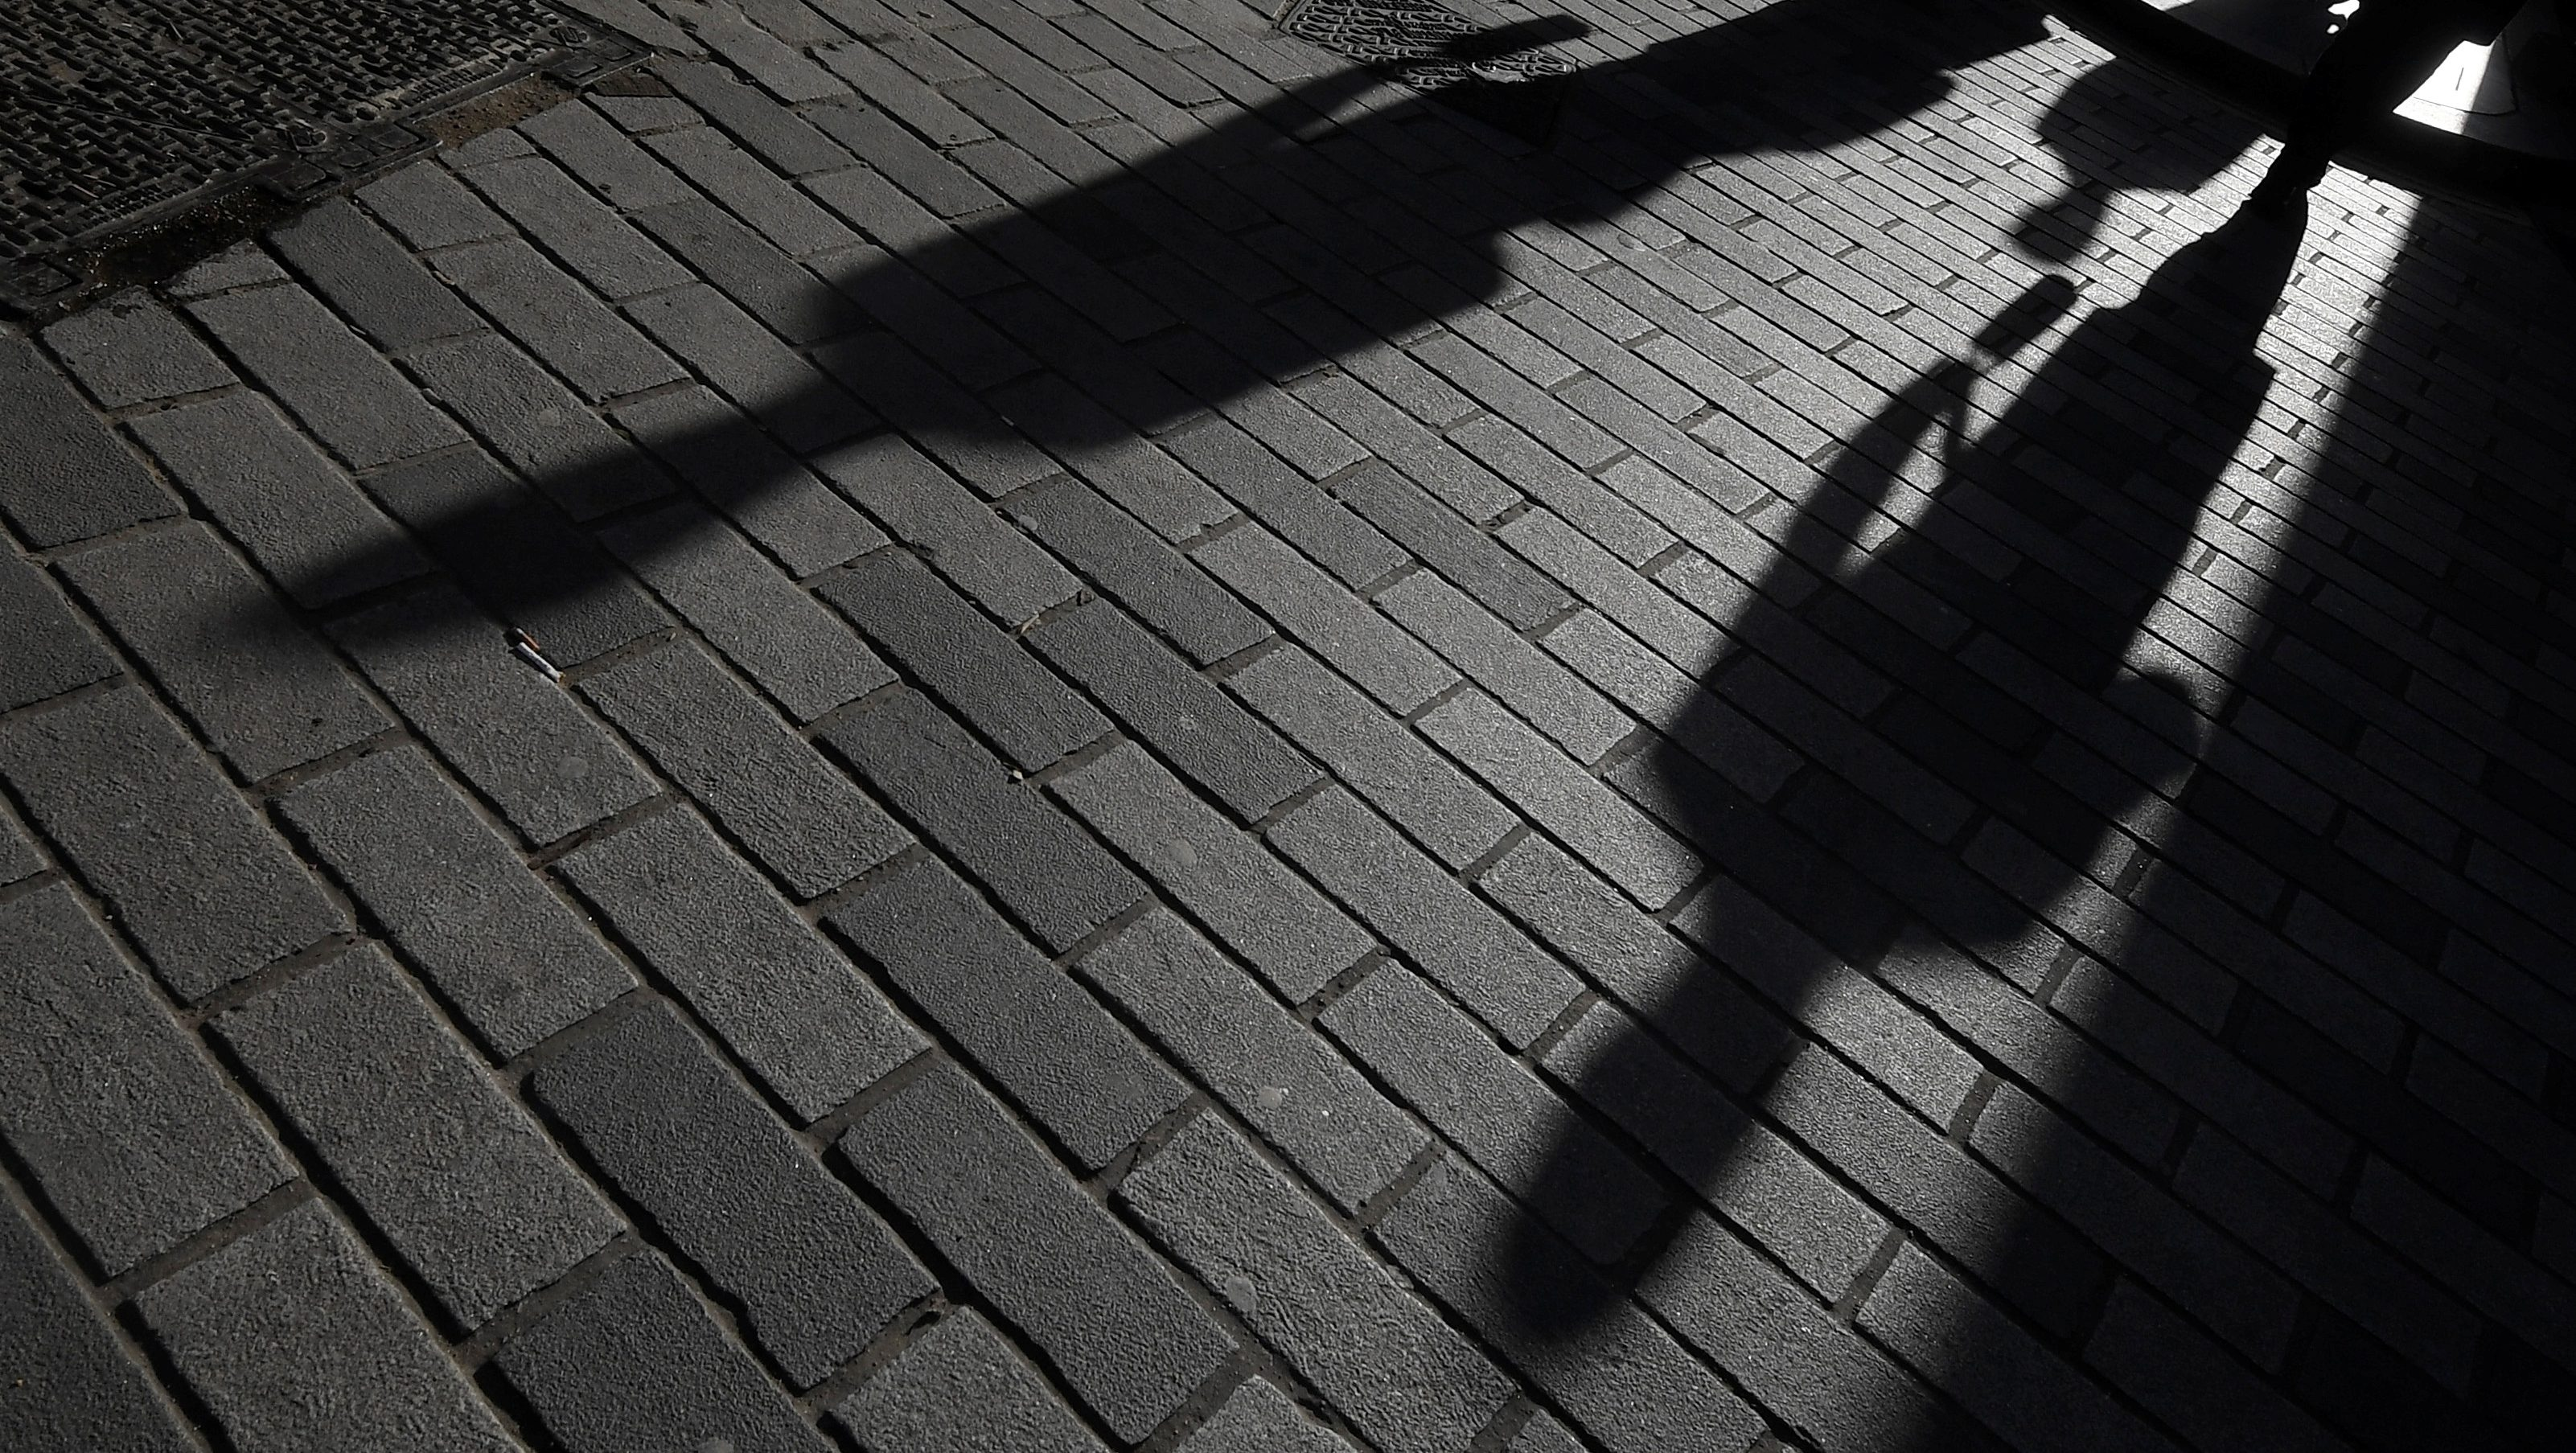 Image of shadows on a cobblestone street. Cities are housing victims of domestic violence in hotels.